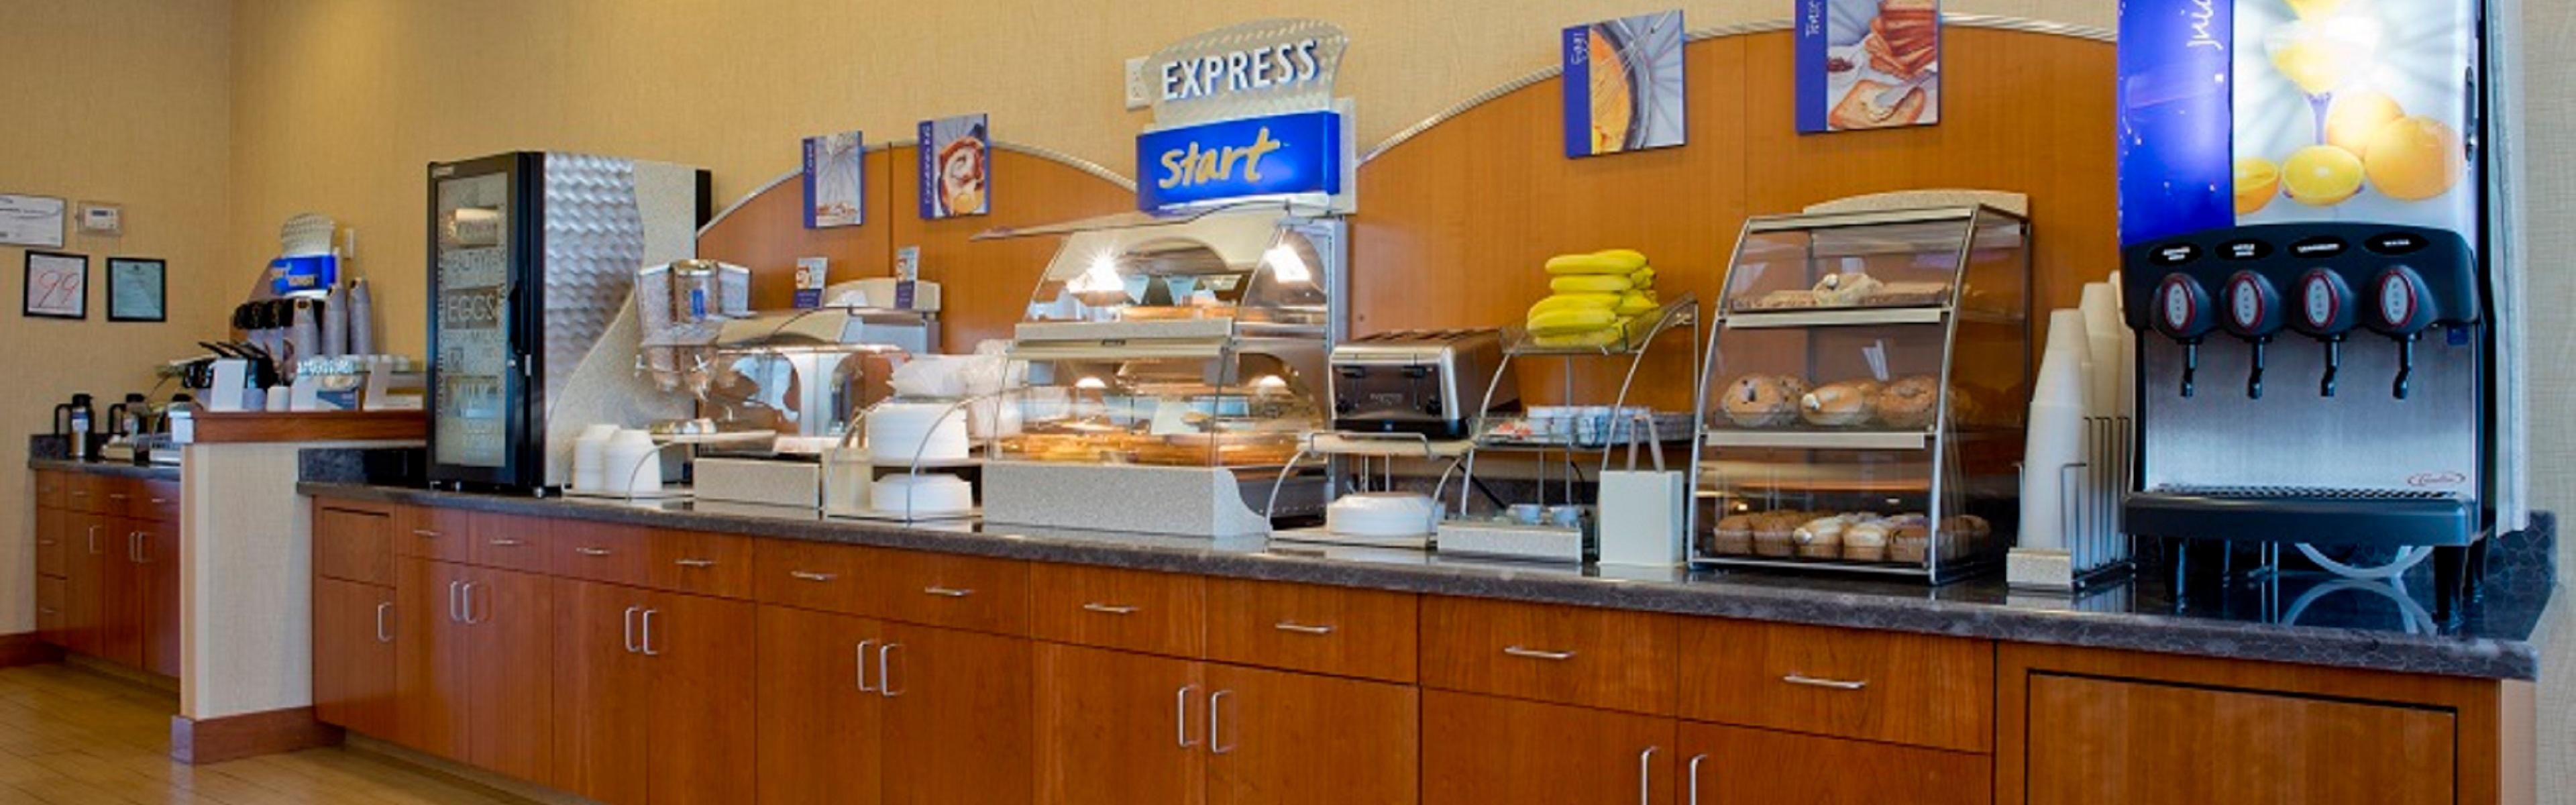 Holiday Inn Express Prattville South image 3